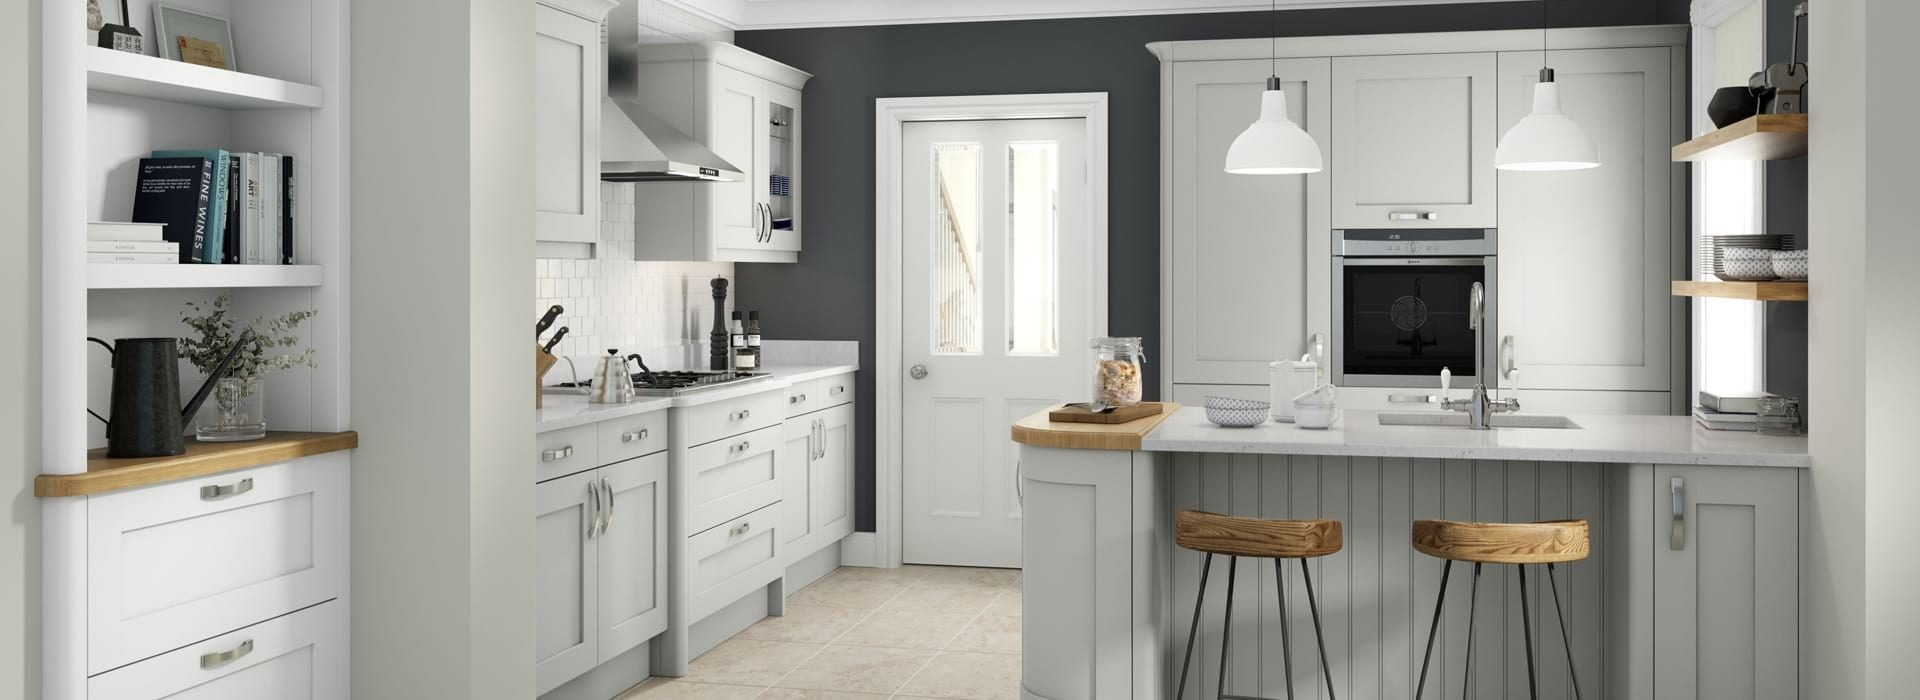 Shaker Kitchens Inspiration And Advice Nh Kitchen Design